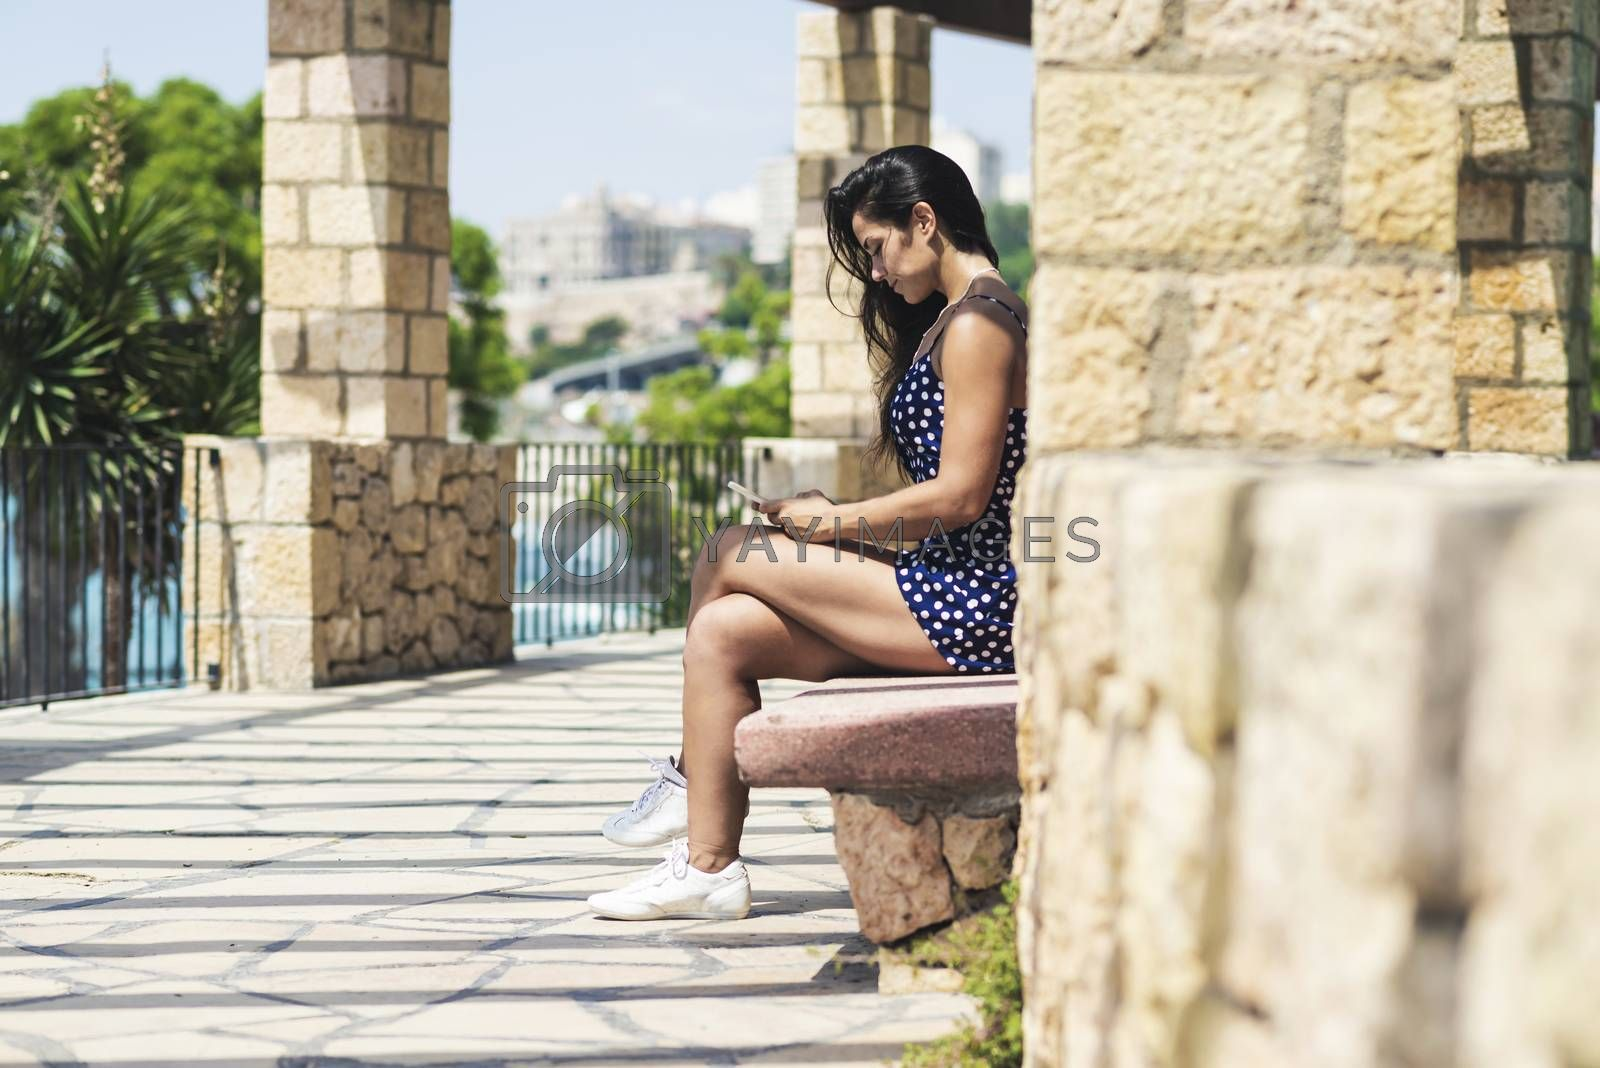 Beautiful woman in blue dress sitting on a bench while using a smartphone